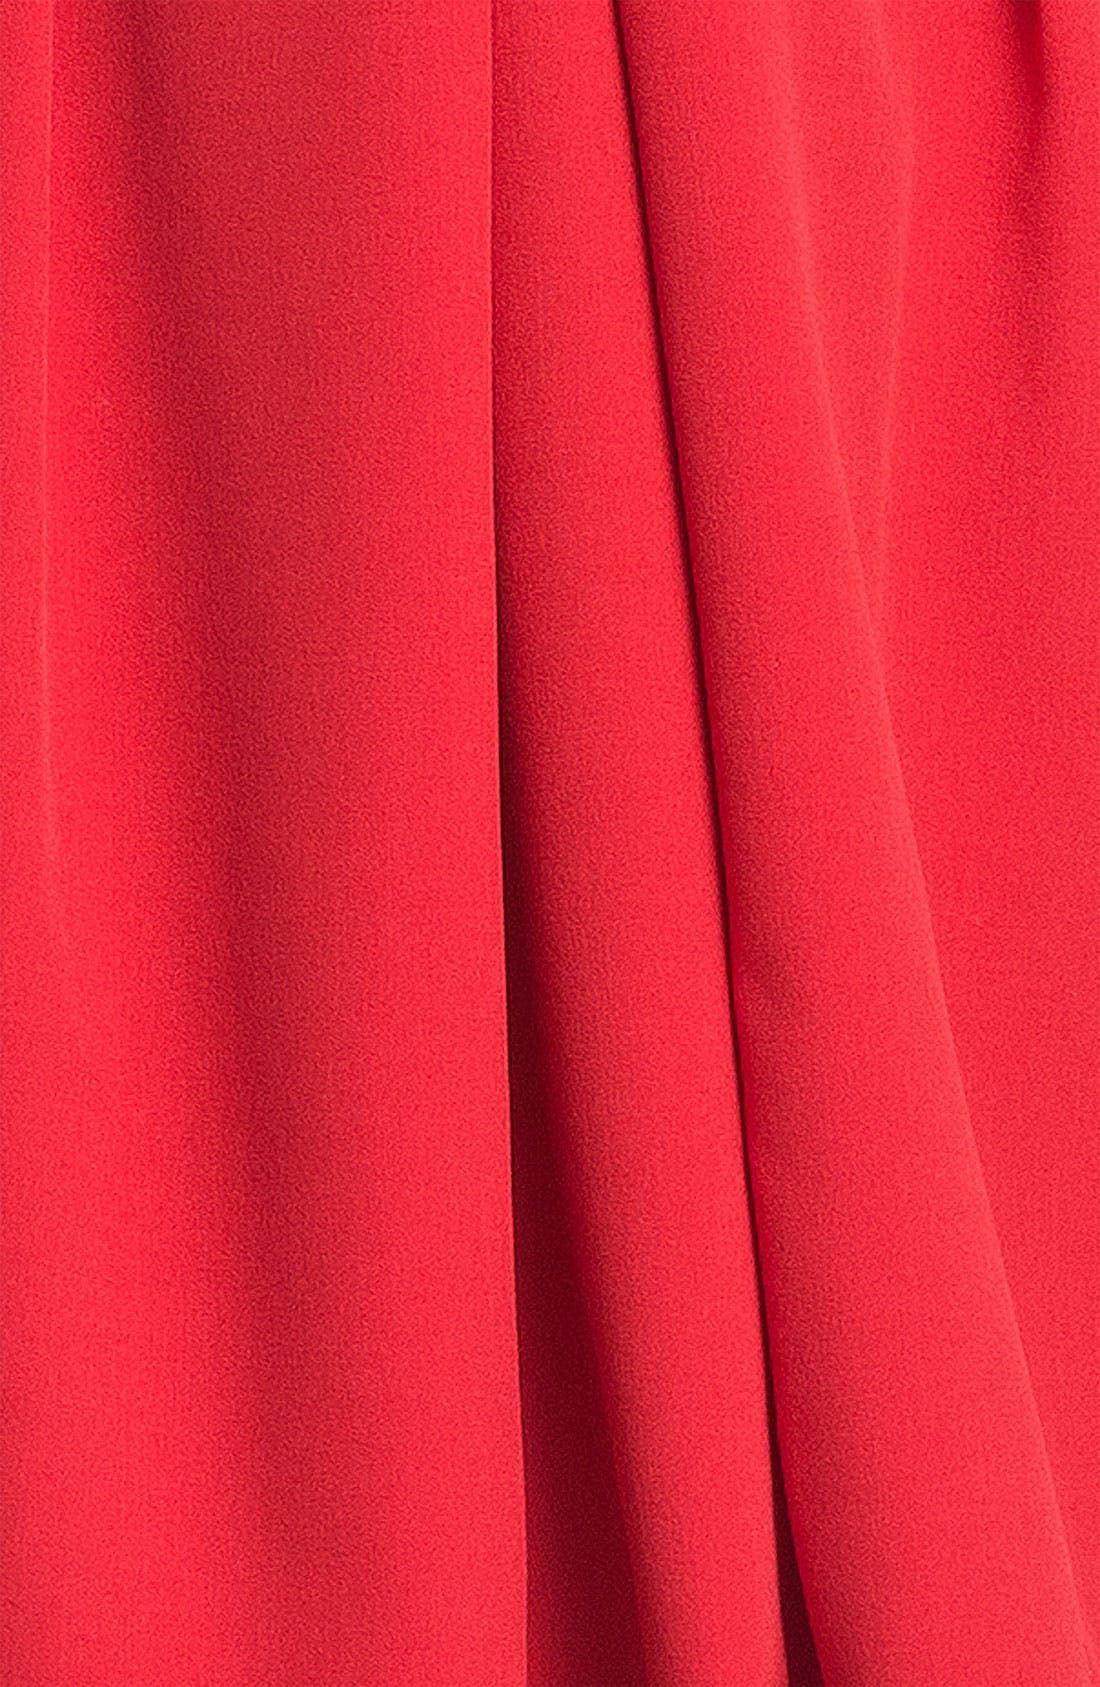 ADRIANNA PAPELL,                             Seamed A-Line Dress,                             Alternate thumbnail 3, color,                             600